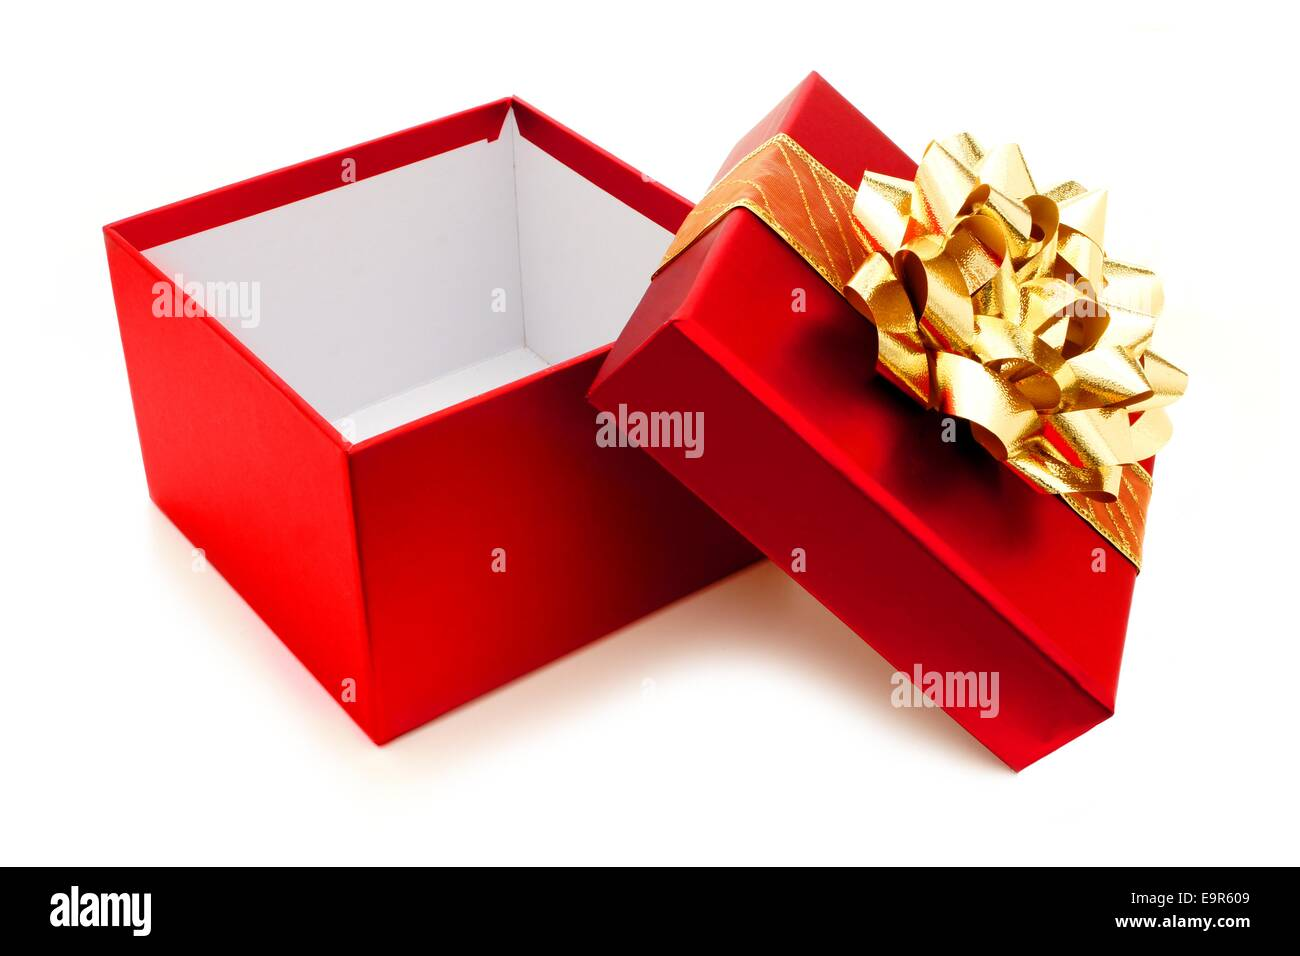 Opened red Christmas gift box with gold bow and ribbon Stock Photo